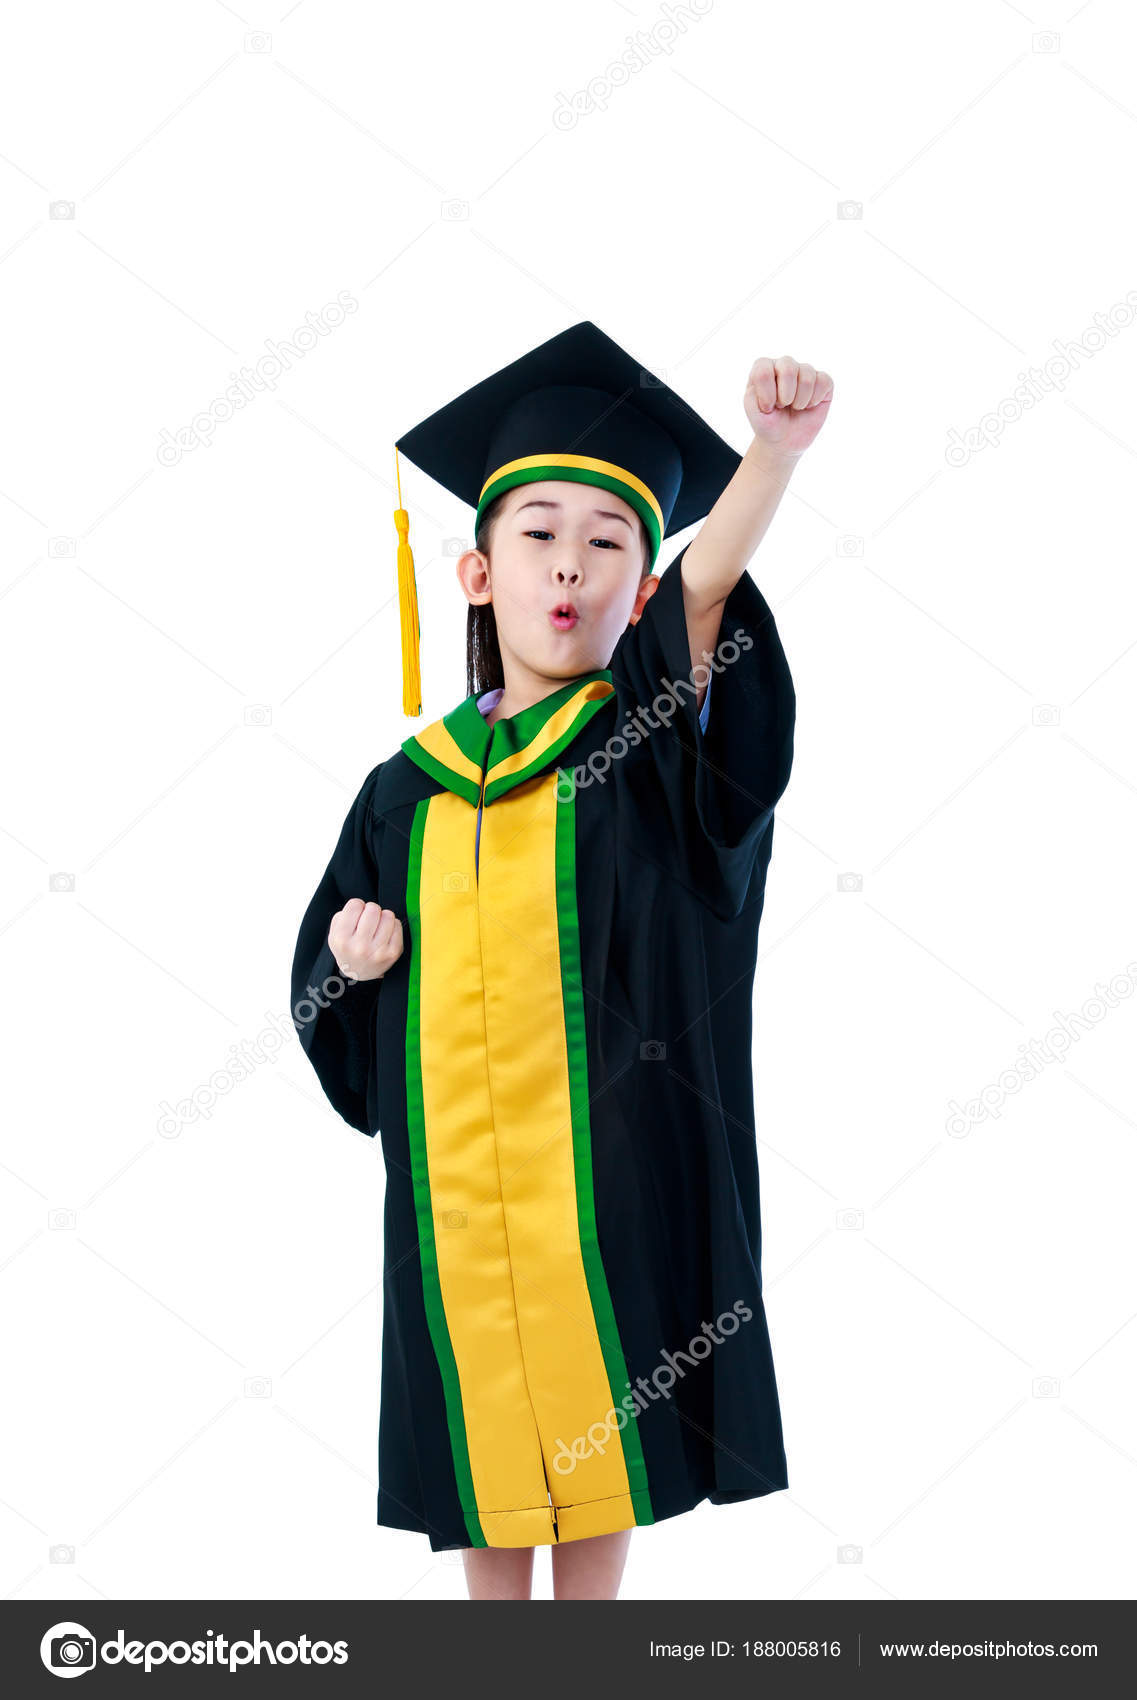 Asian Child In Graduation Gown With Cap Isolated On White